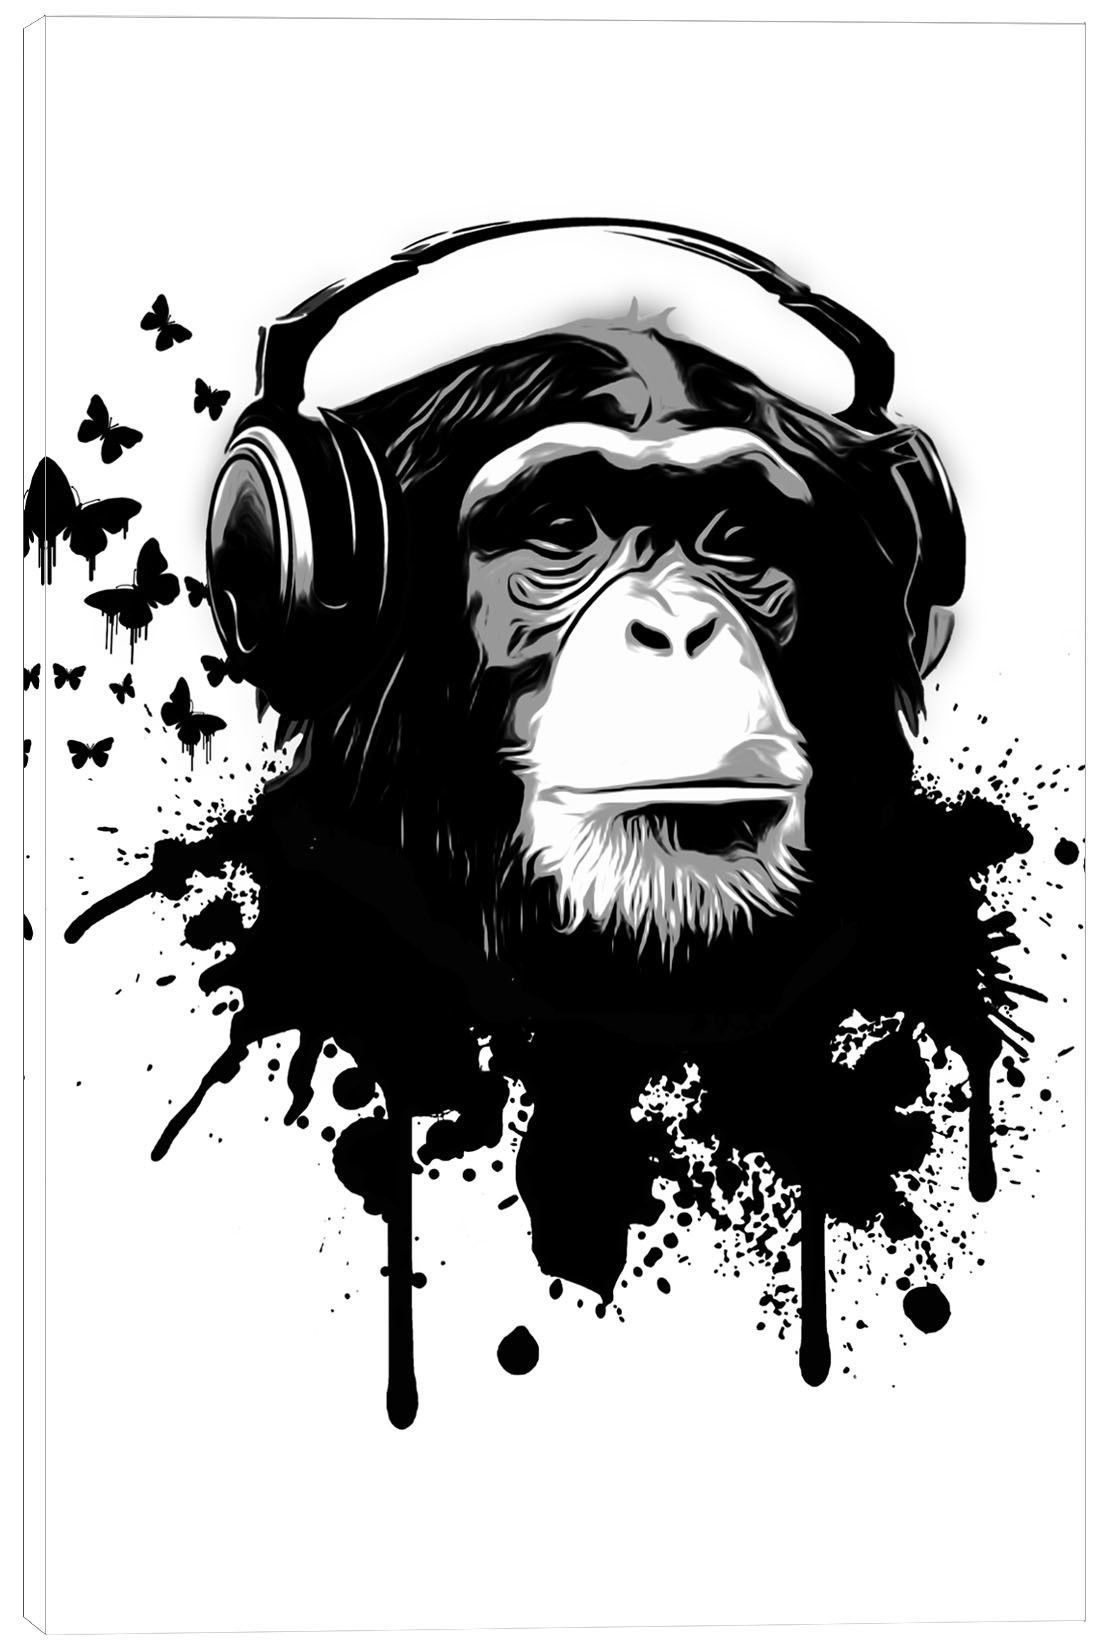 Monkey Business by Nicklas Gustafsson Graphic Art on Canvas